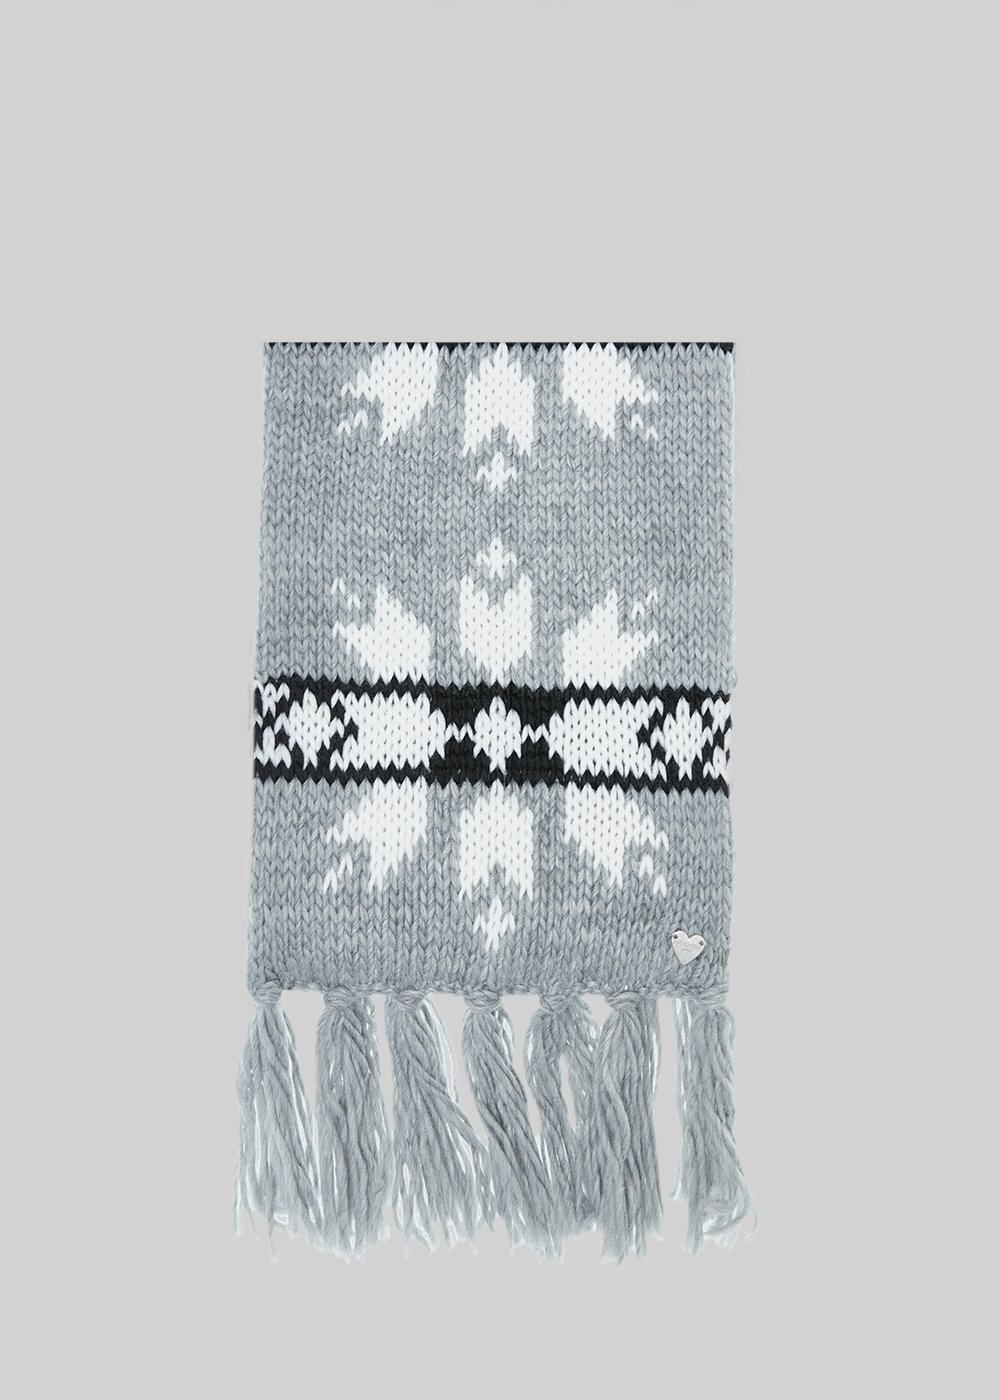 Sady scarf with snowflake pattern and fringes